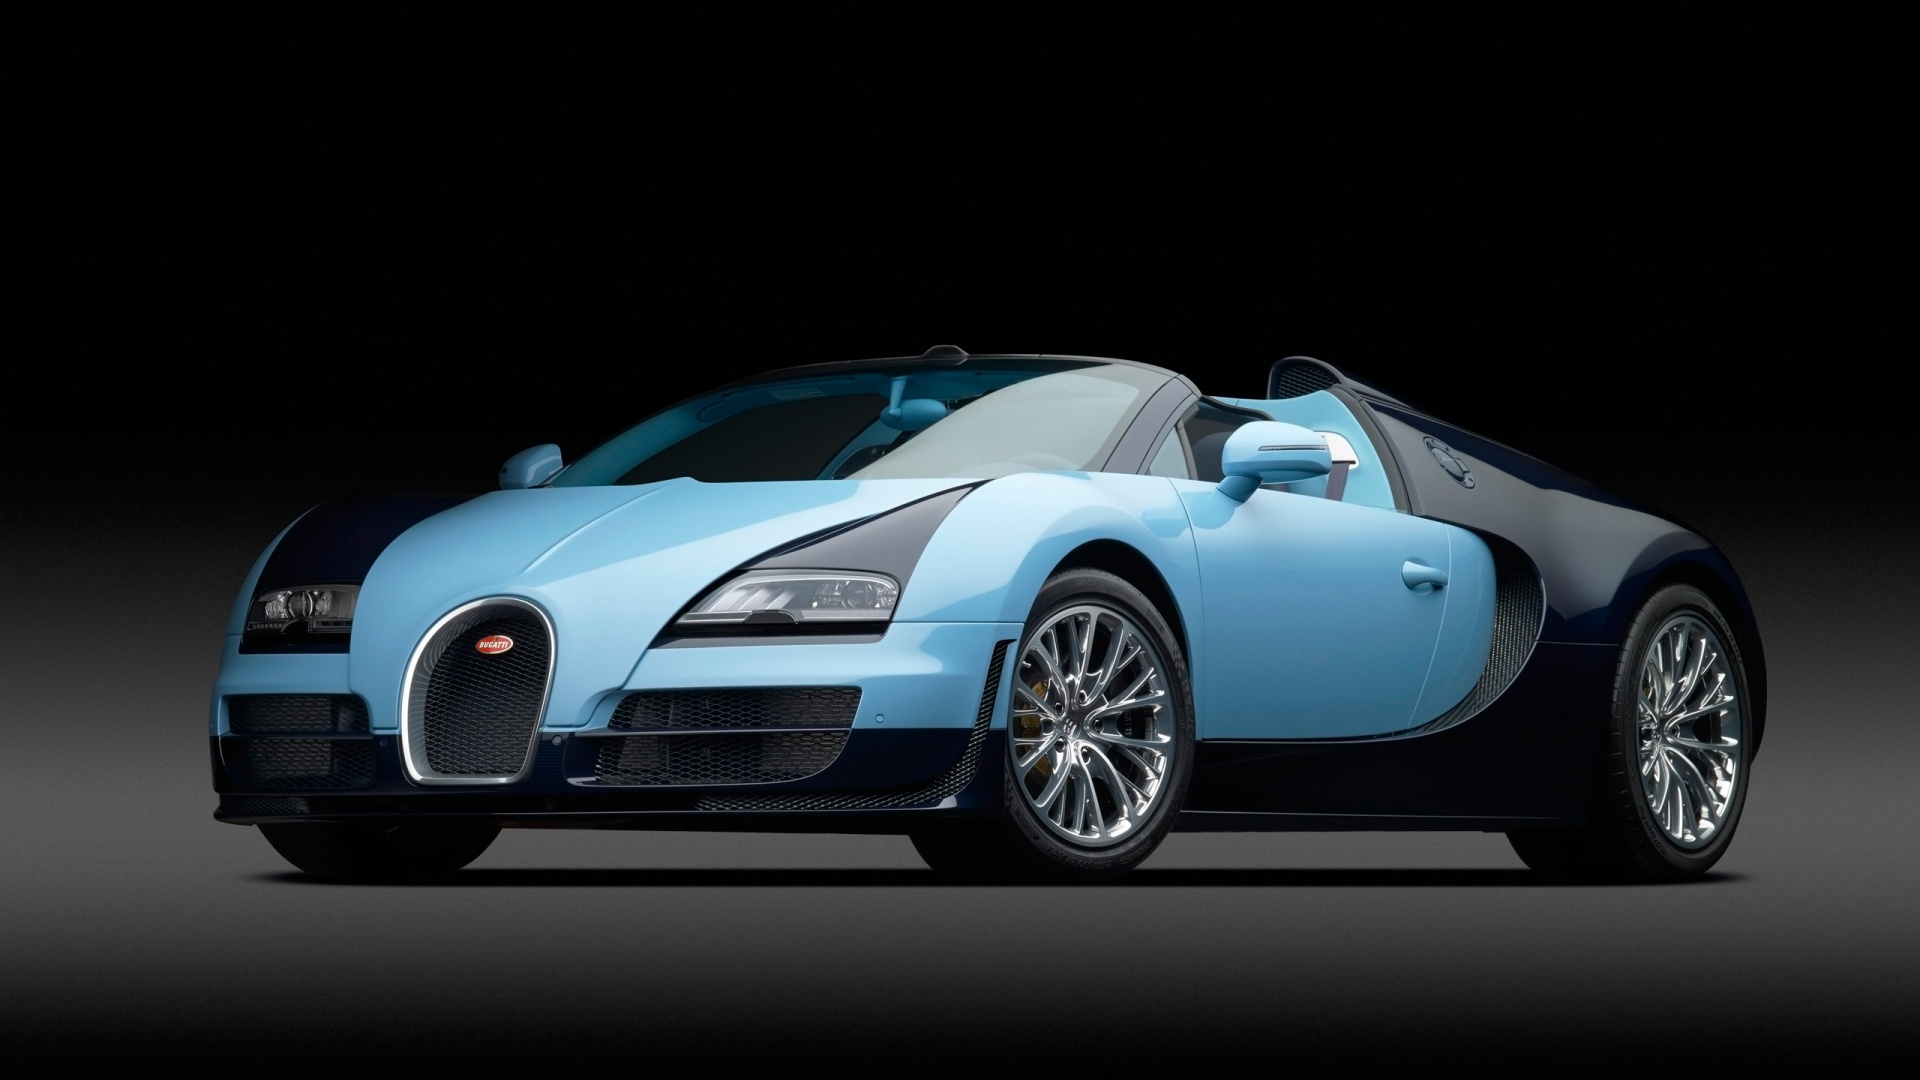 bugatti veyron wallpapers blue hd desktop wallpapers 4k hd. Black Bedroom Furniture Sets. Home Design Ideas